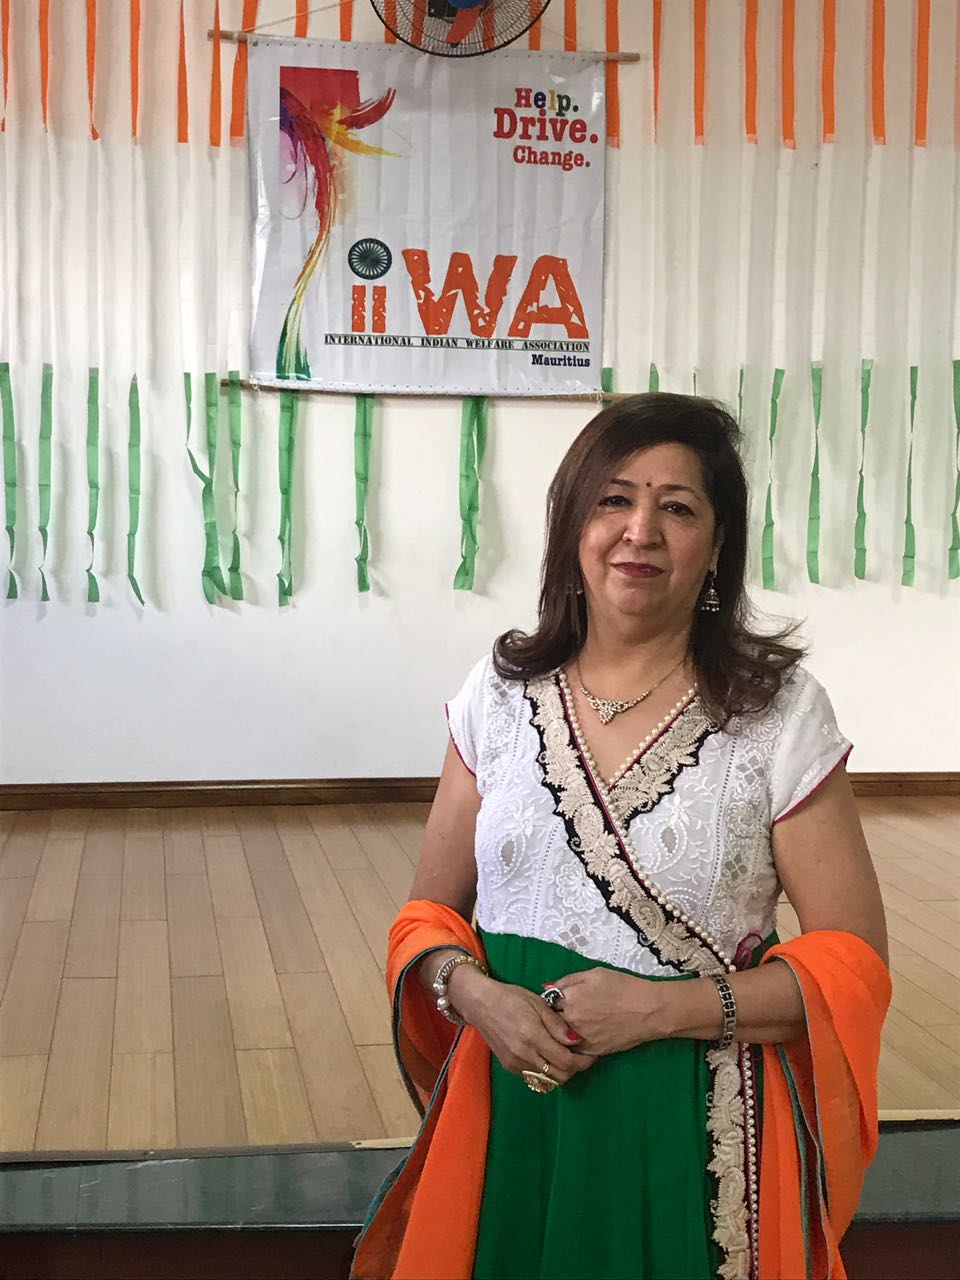 IIWA President speech on the Occasion of India's 70th Independence day